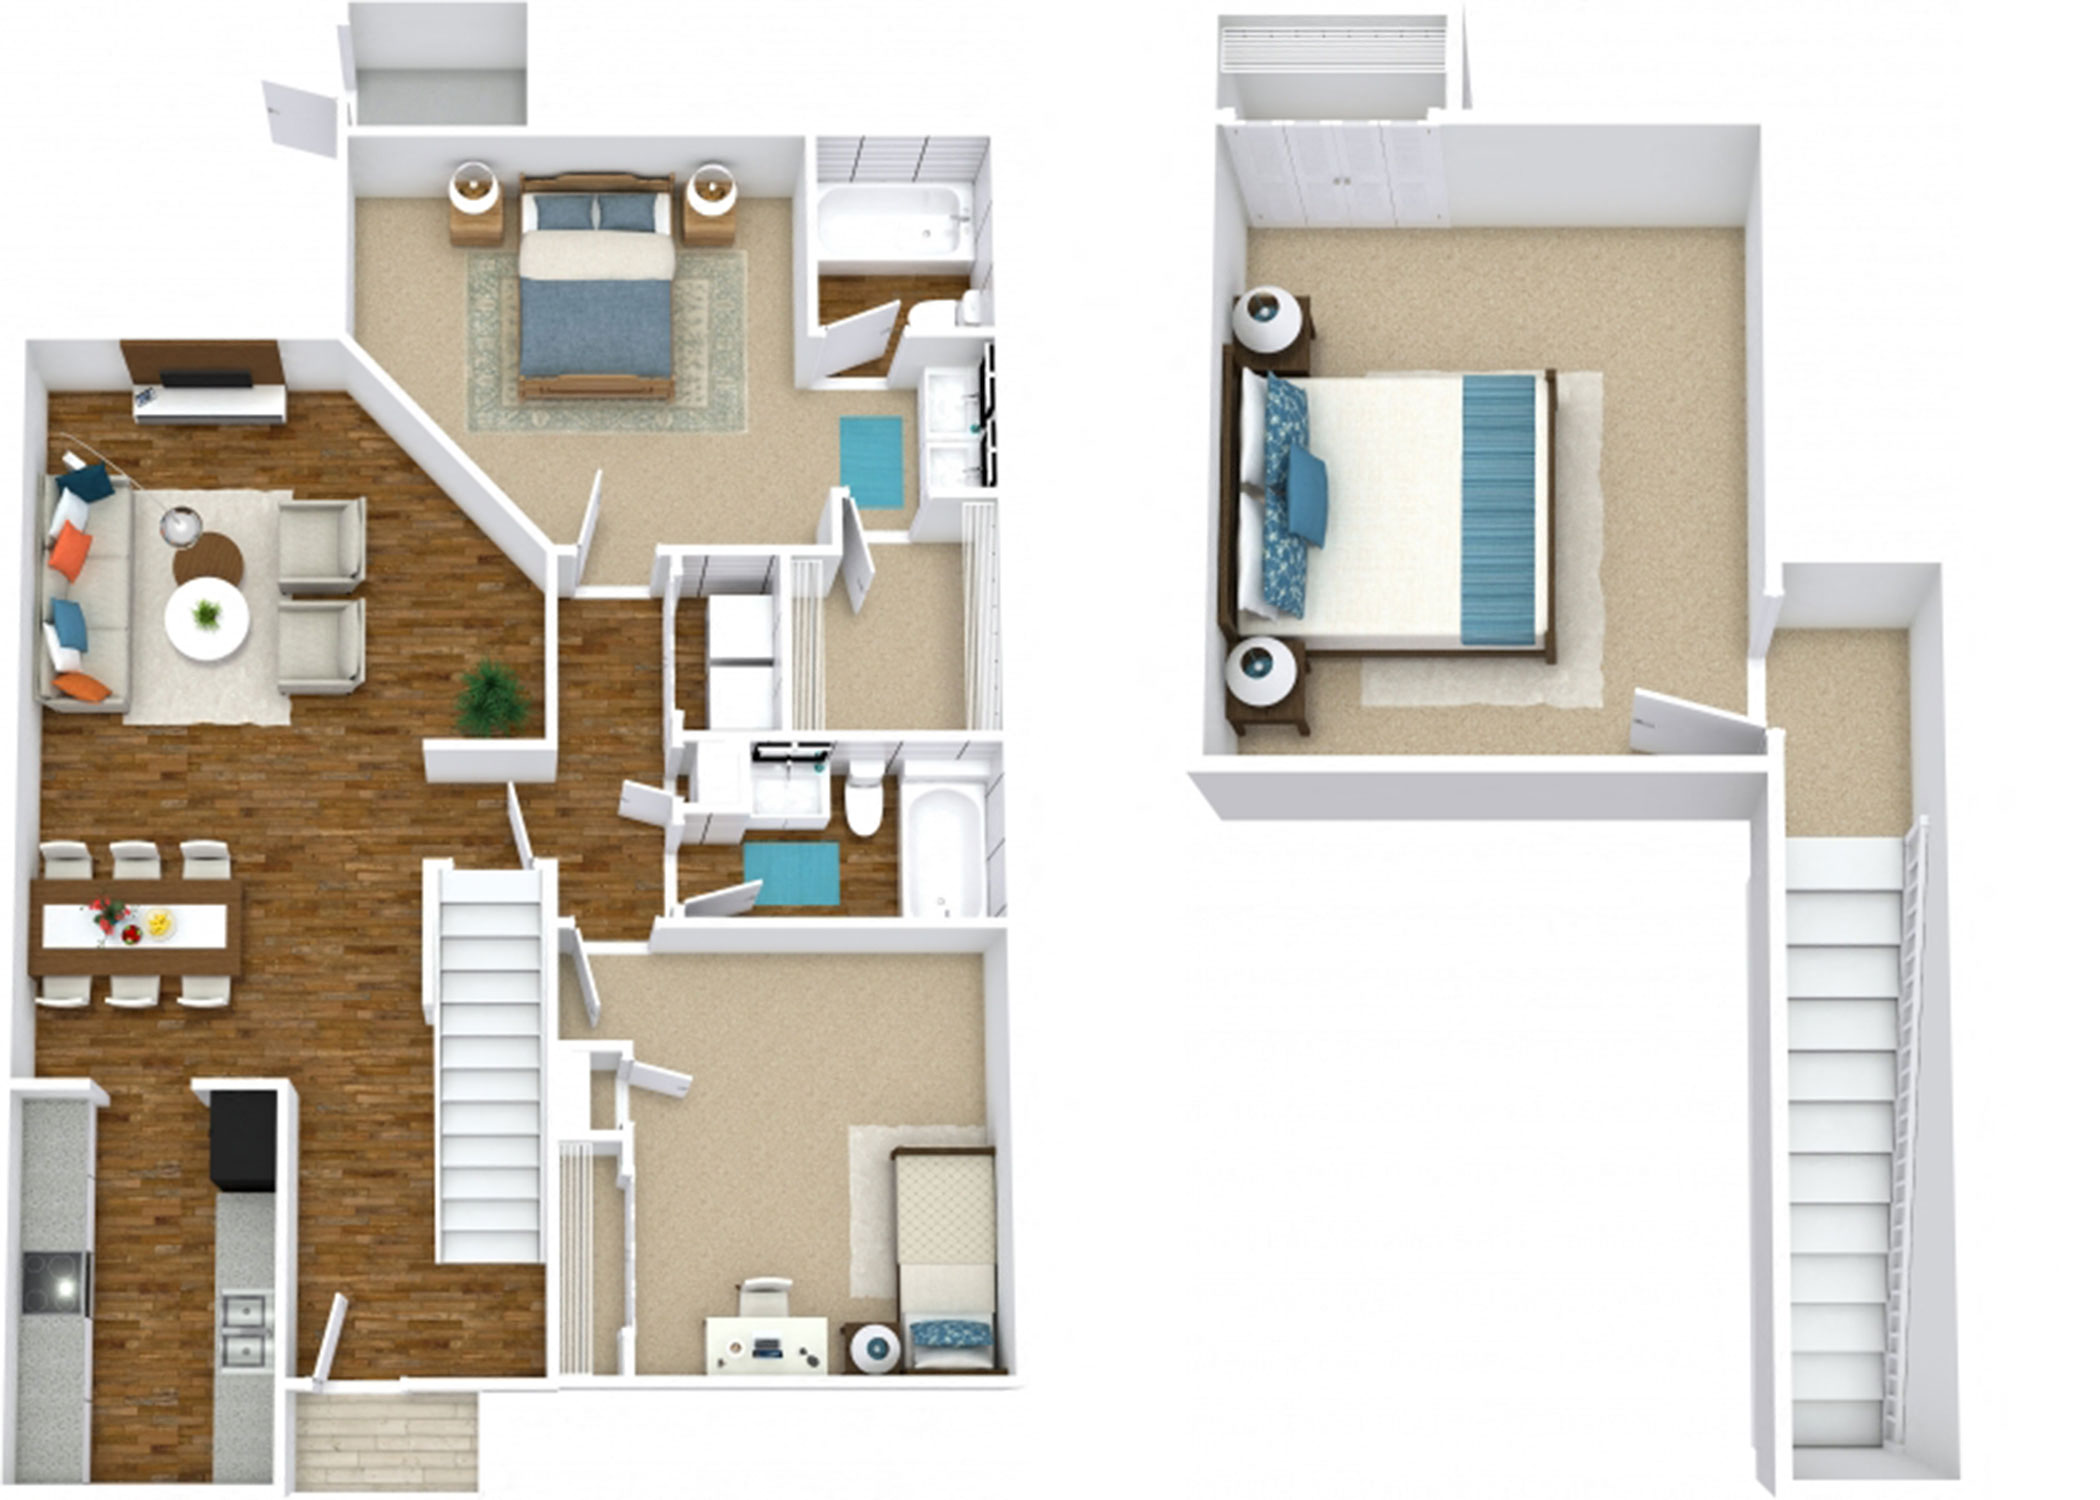 The Magnolia Townhome